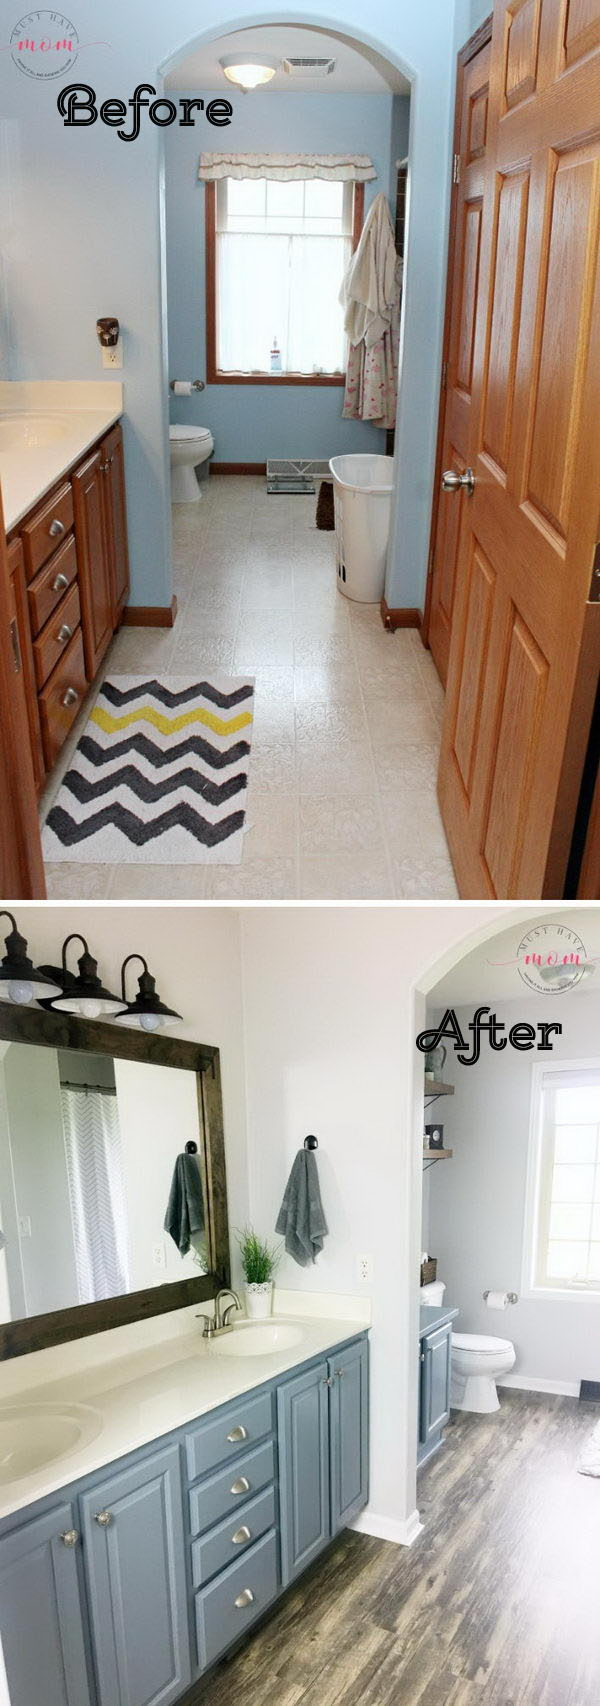 50 Gorgeous Bathroom Makeovers With Before And After